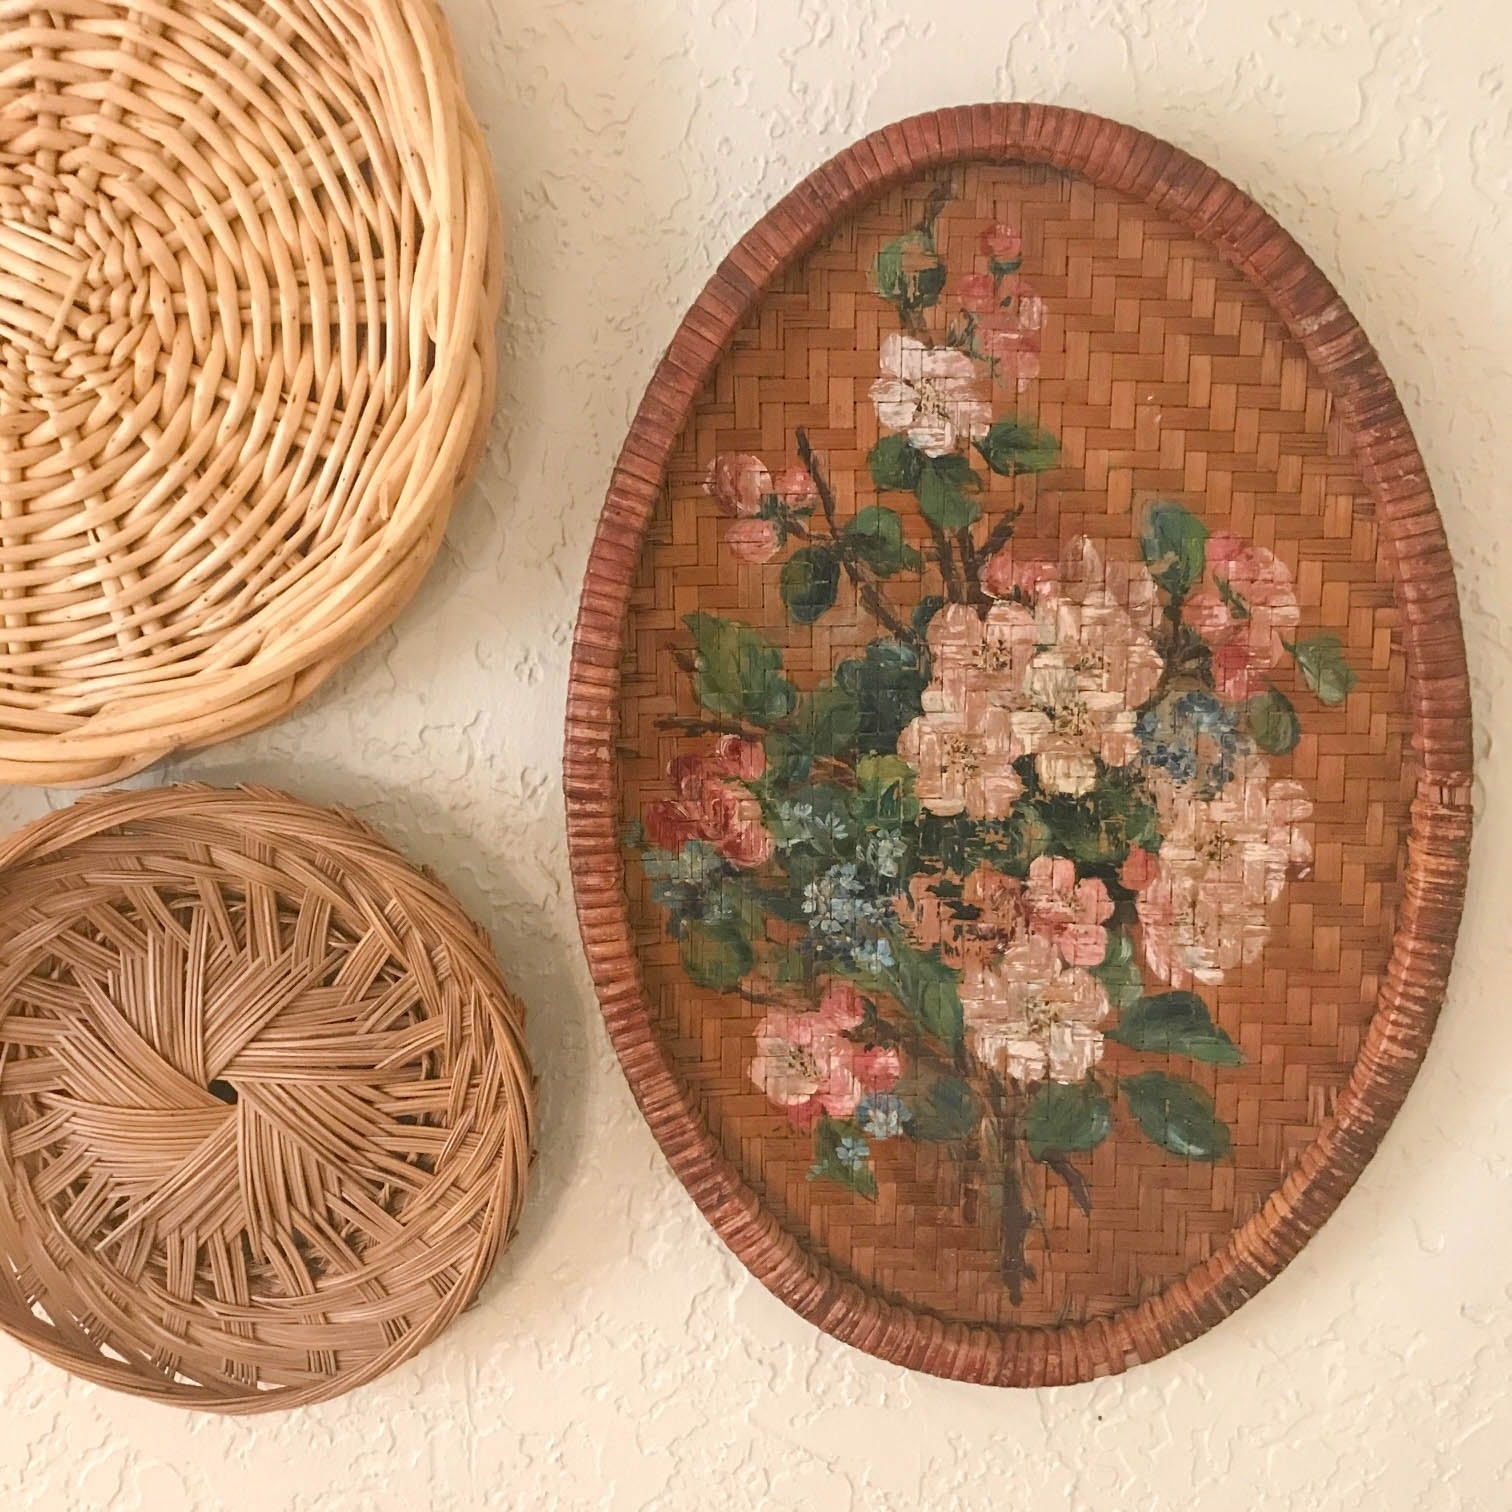 Woven Basket Wall Art Intended For Well Known Vintage Wicker Wall Art, Basket Wall Decor, Painted Wicker Wall (Gallery 16 of 20)